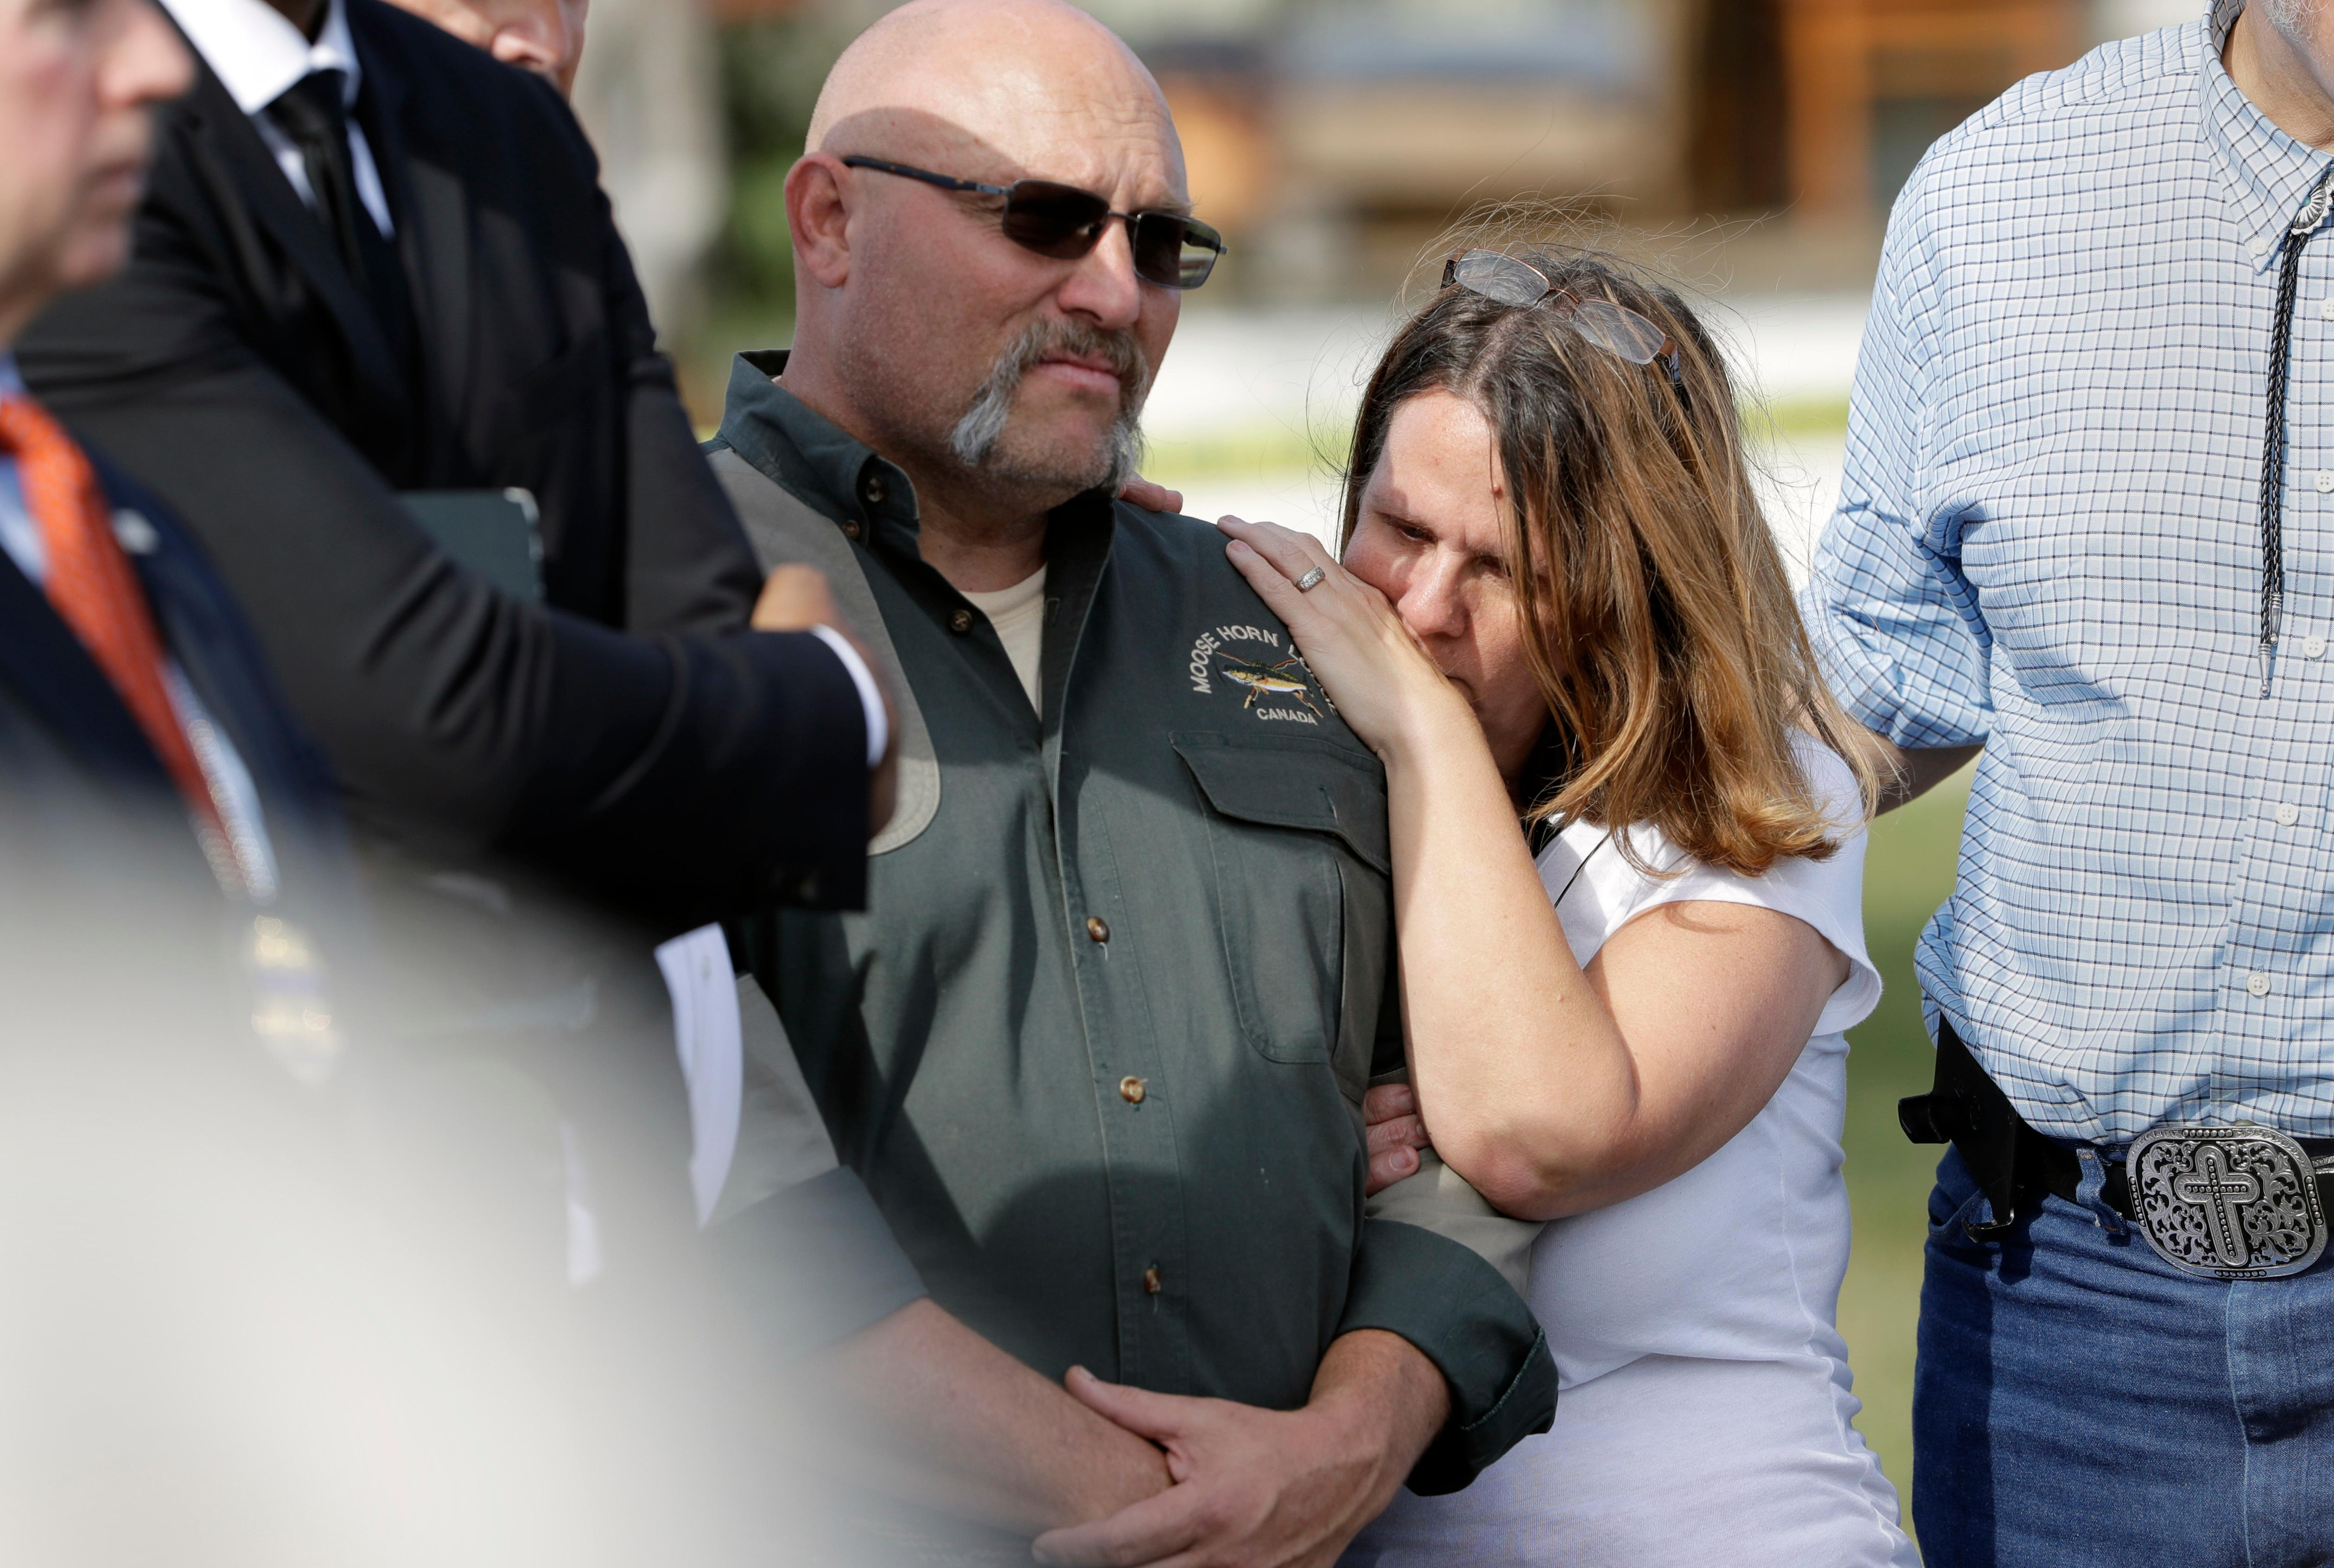 Pastor Frank Pomeroy and his wife Sherri join a news conference near the First Baptist Church of Sutherland Springs, Monday, Nov. 6, 2017, in Sutherland Springs, Texas. A man opened fire inside the church in the small South Texas community on Sunday, killing and wounding many. The Pomeroys daugher, Annabelle, 14, was killed in the shooting. (AP Photo/Eric Gay)